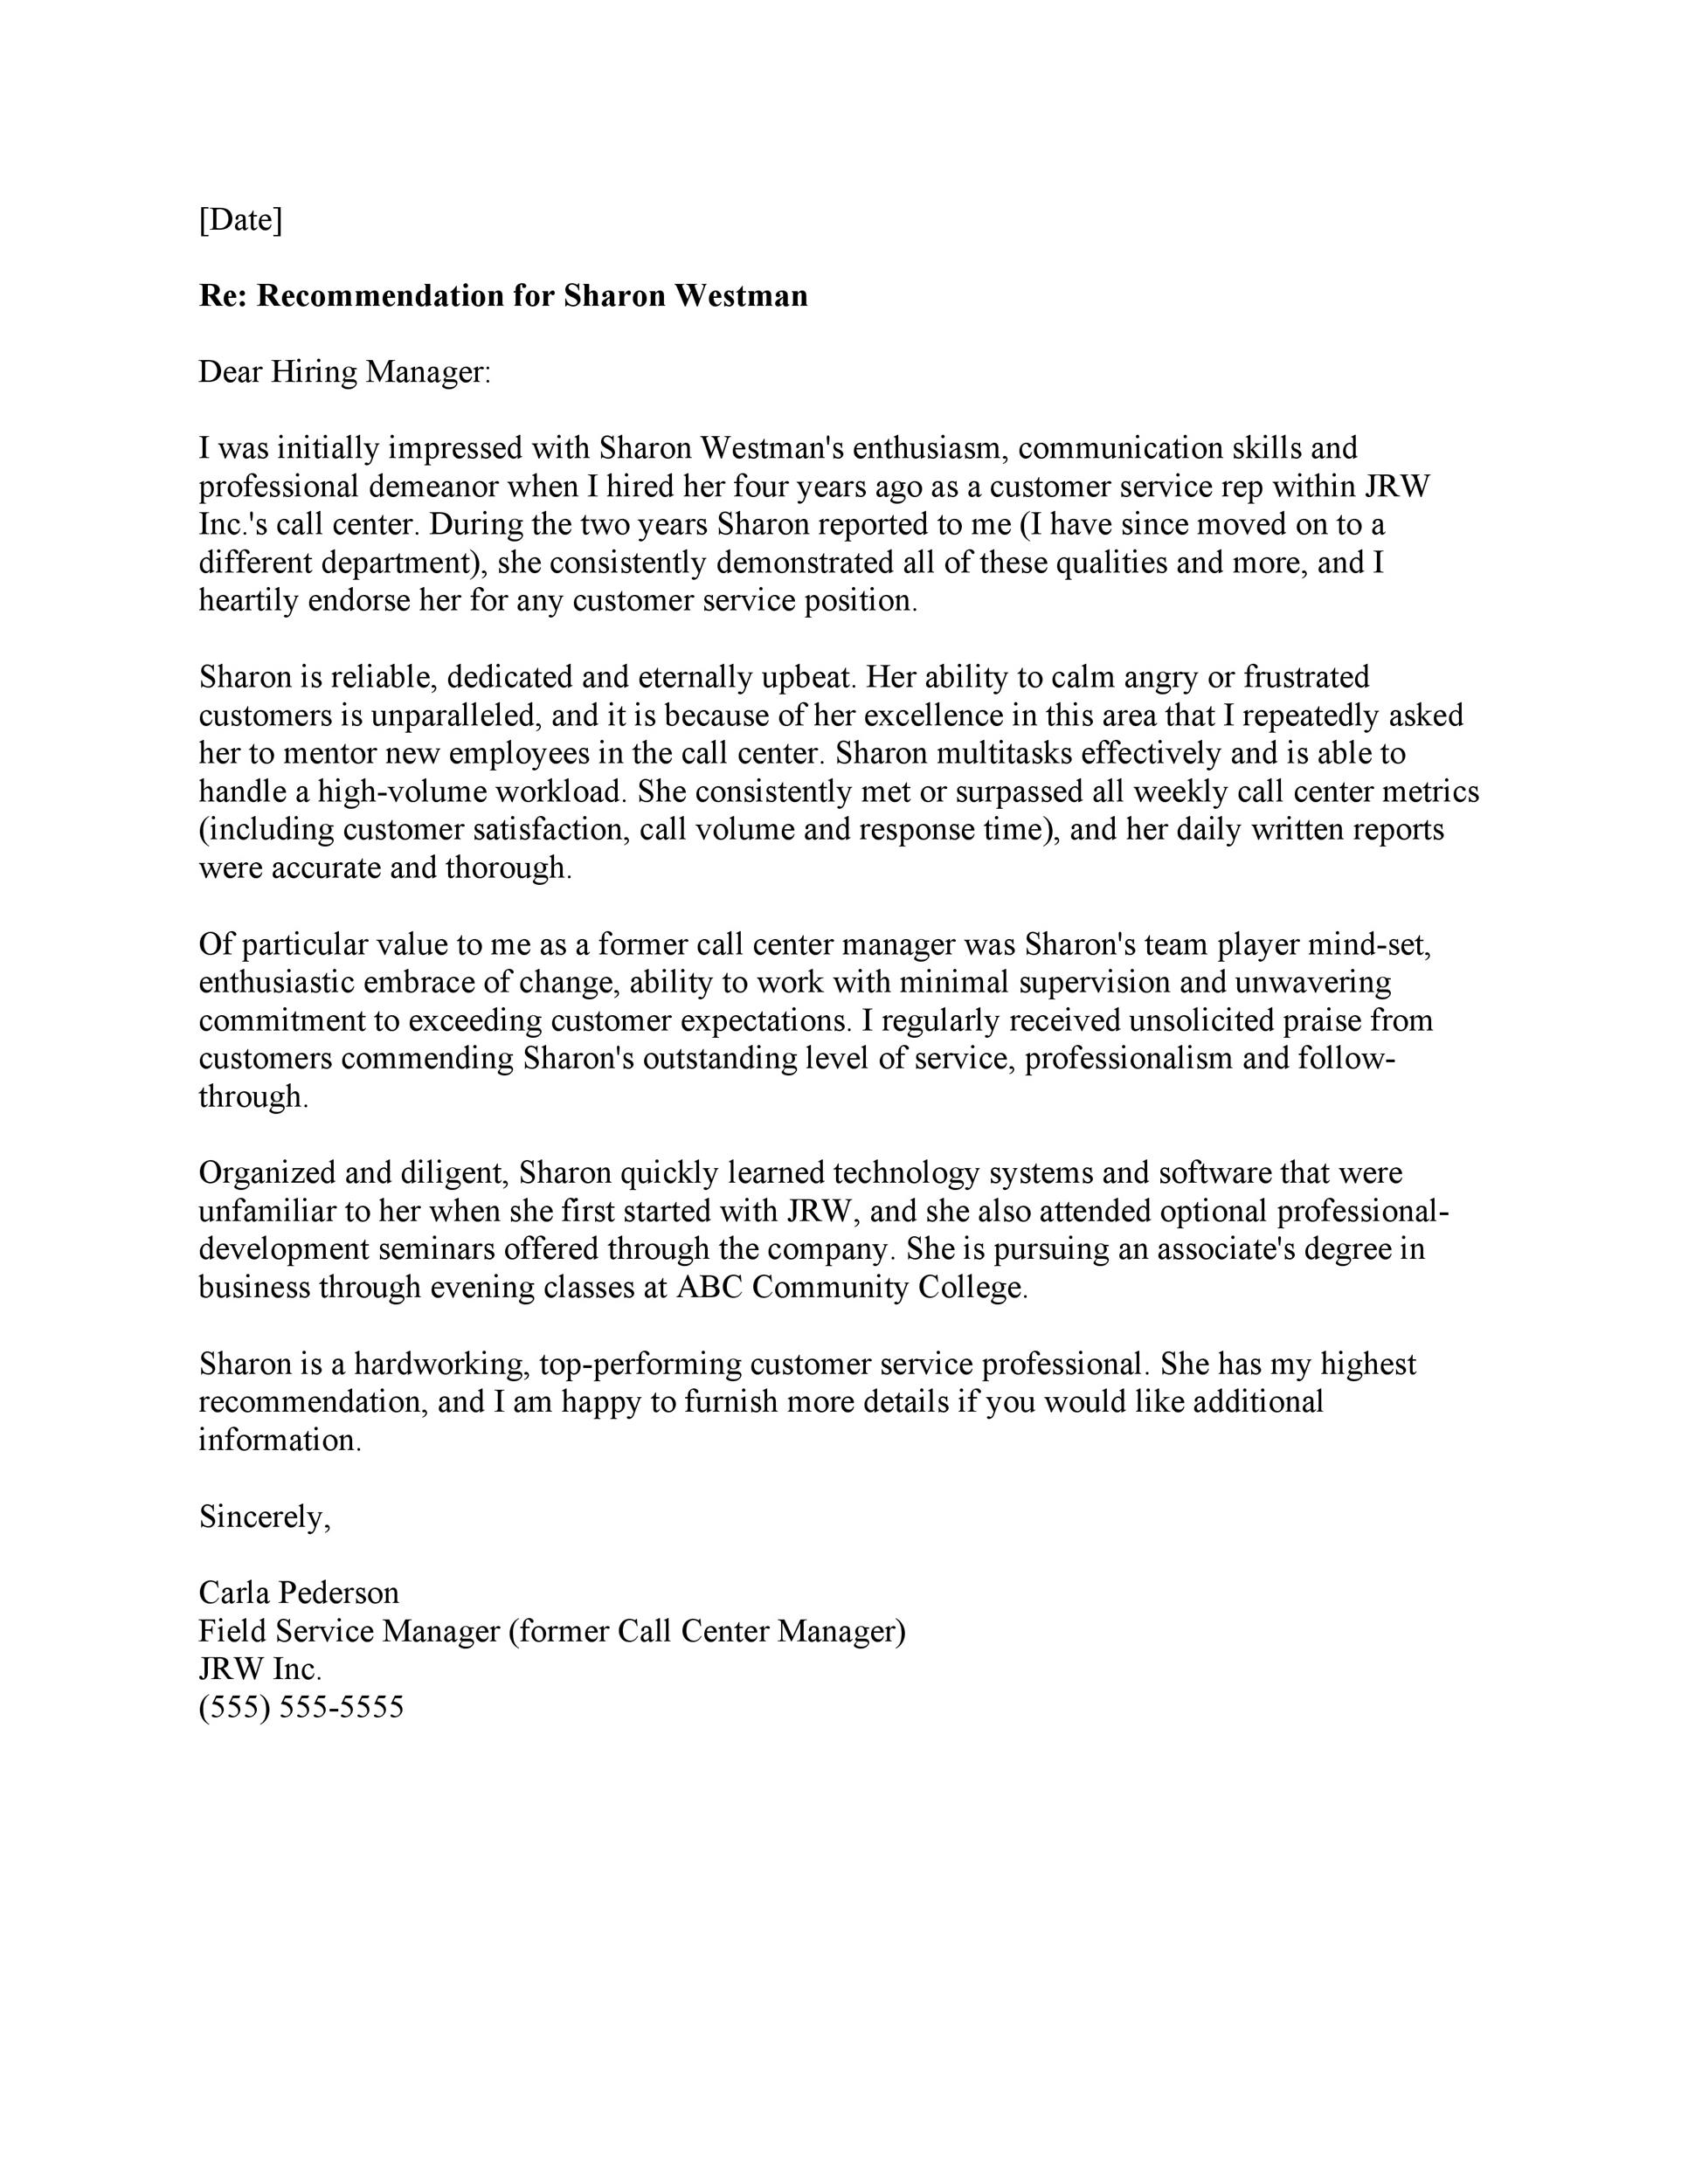 letter of recommendation template free